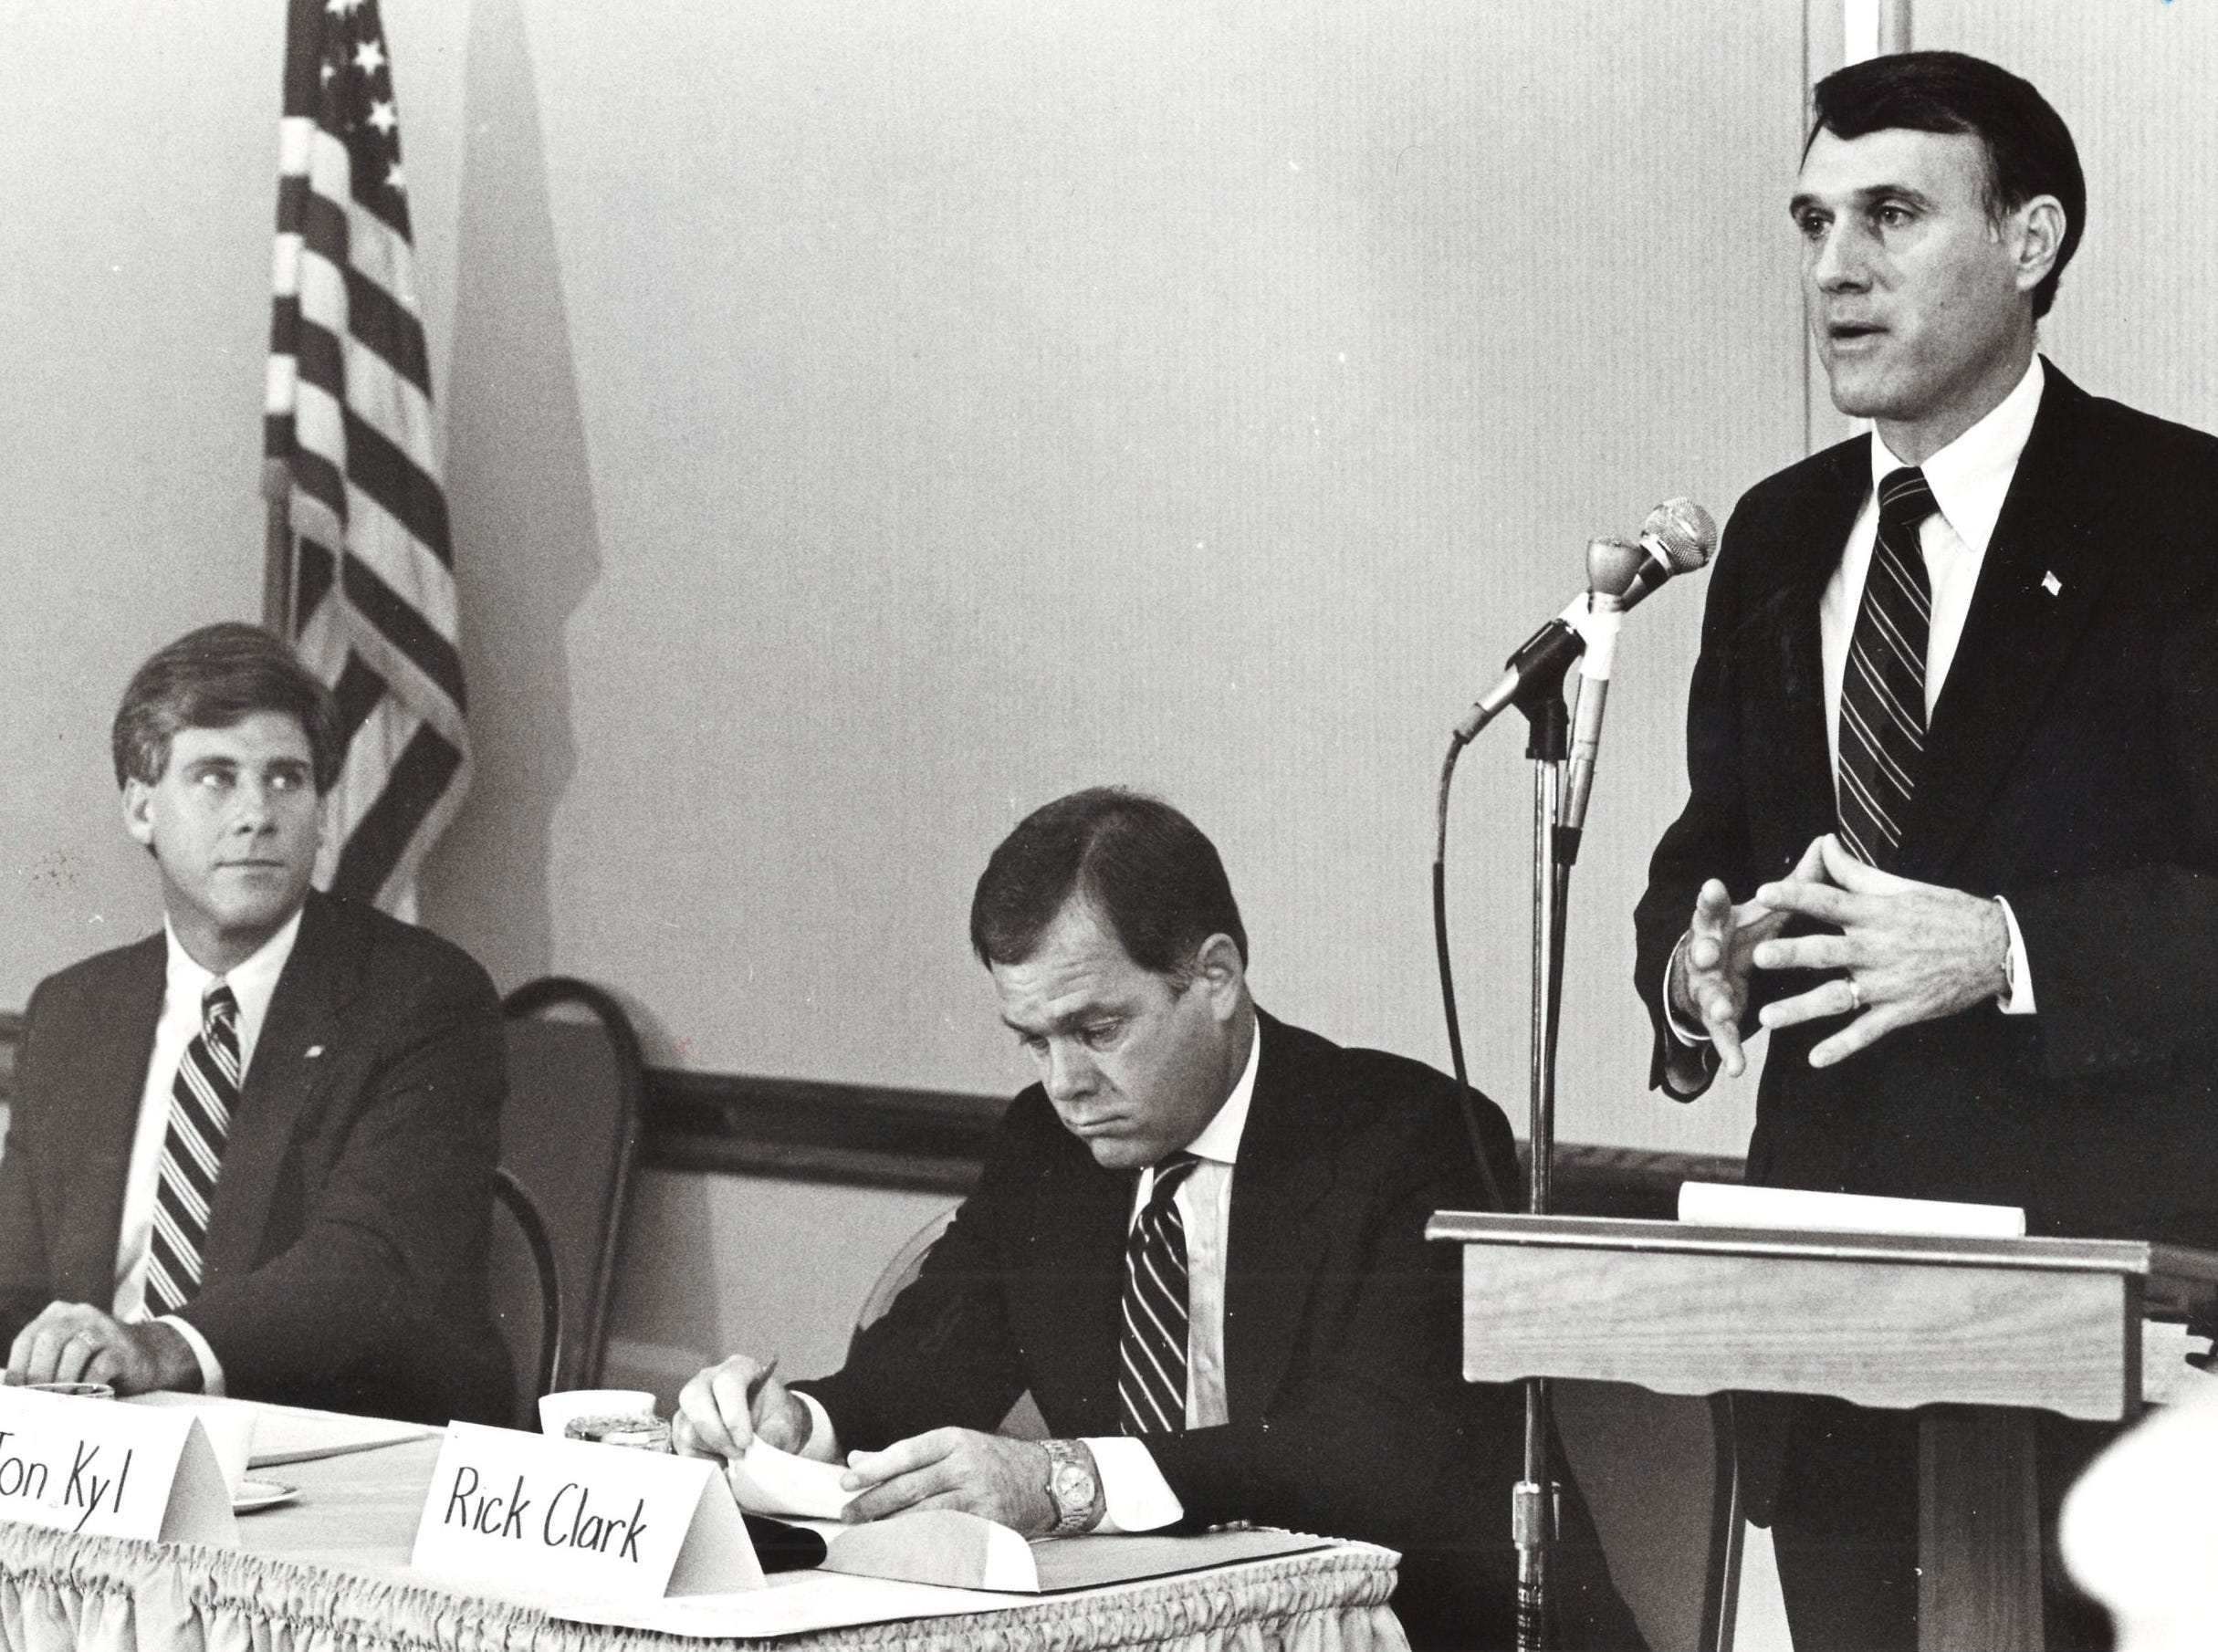 Jon Kyl, candidate for Congressional District 4, Oct. 22, 1986.